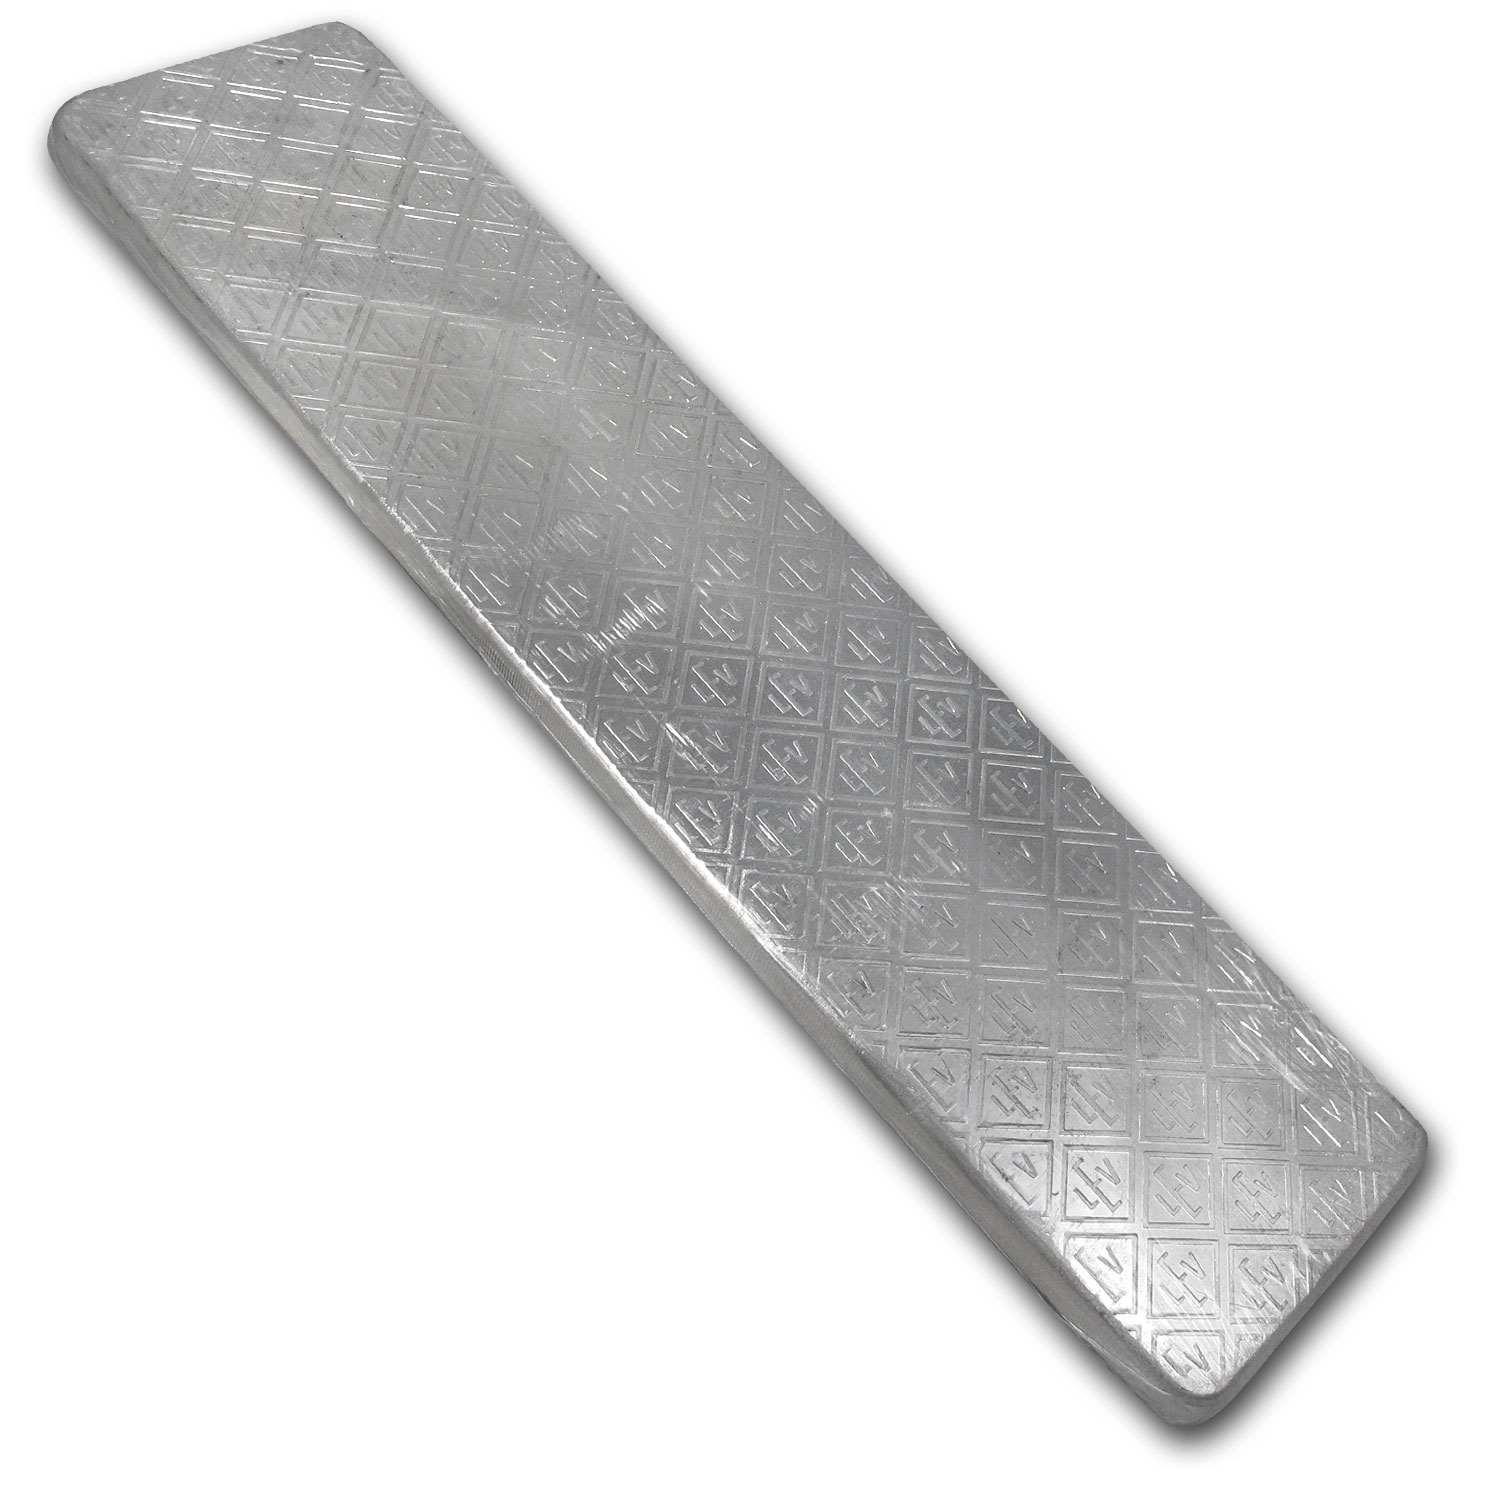 100 oz Silver Bar - Geiger (1st Gen Design, Security Line Series)